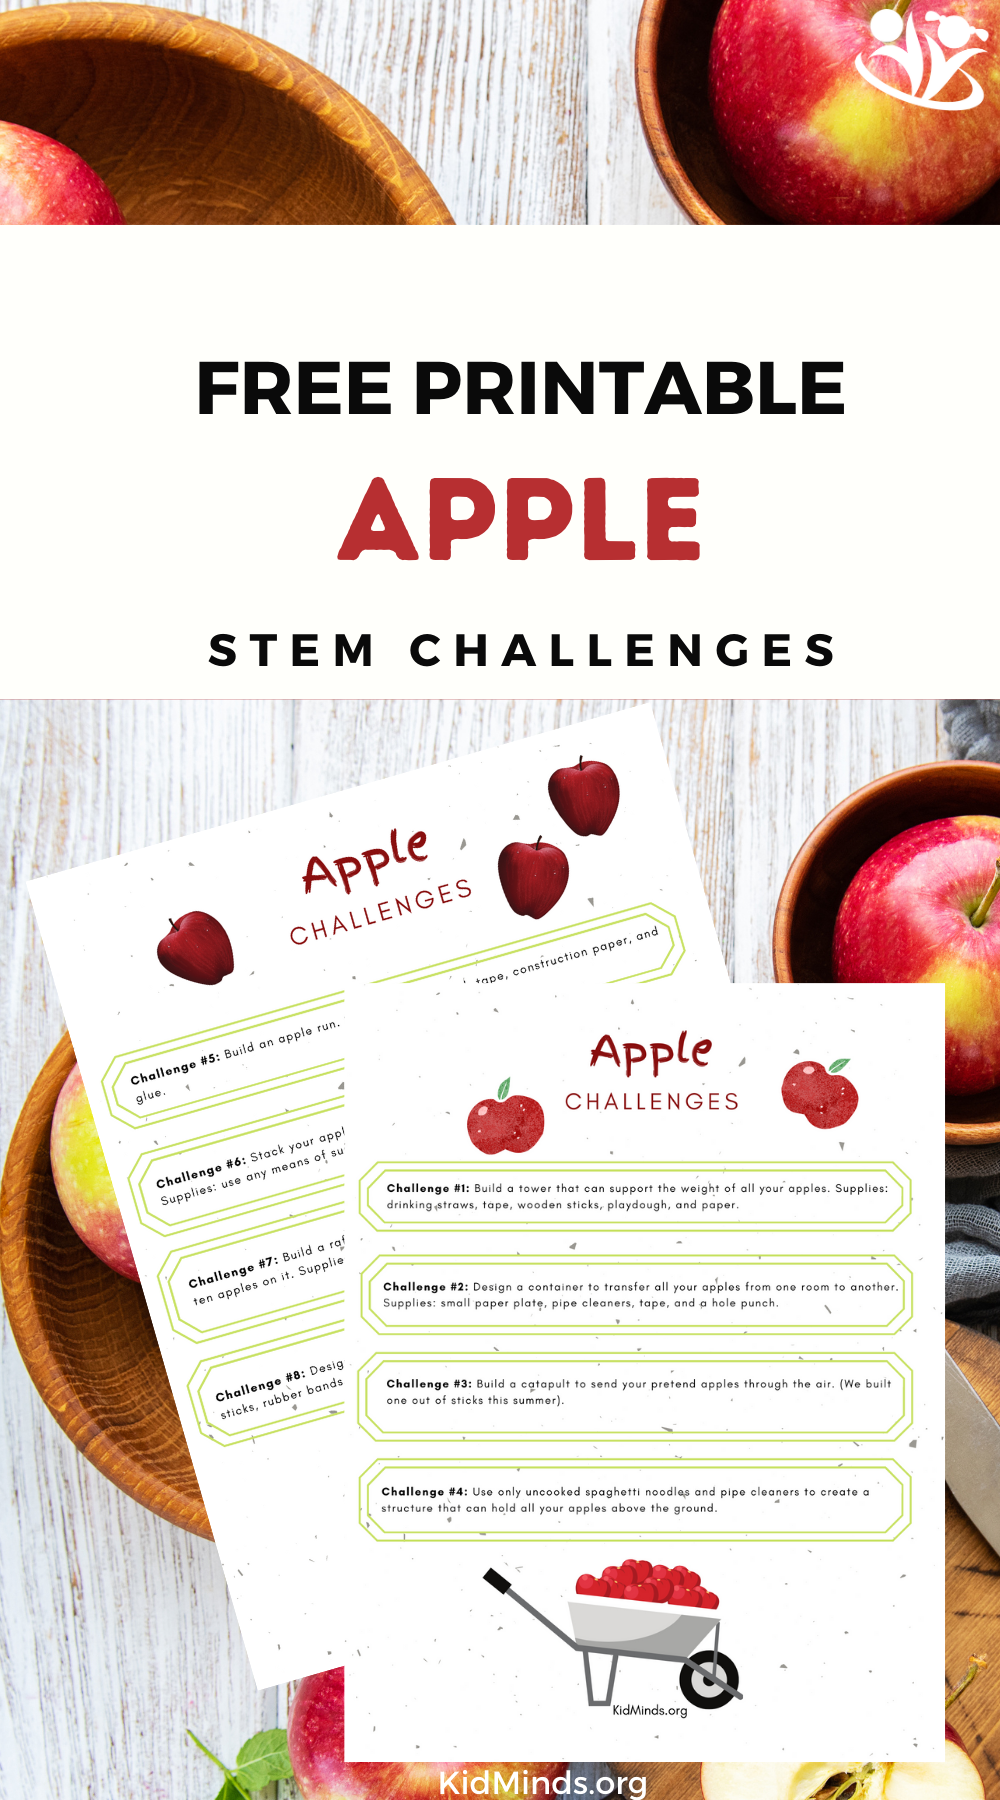 Do this simple activity after reading Dr. Seuss's Ten Apples Up On Top, and you'll turn storytime into a STEM lesson. #kidsactivities #DrSeuss #STEM #kidminds #handsonlearning #spring #TenApplesUpOnTop